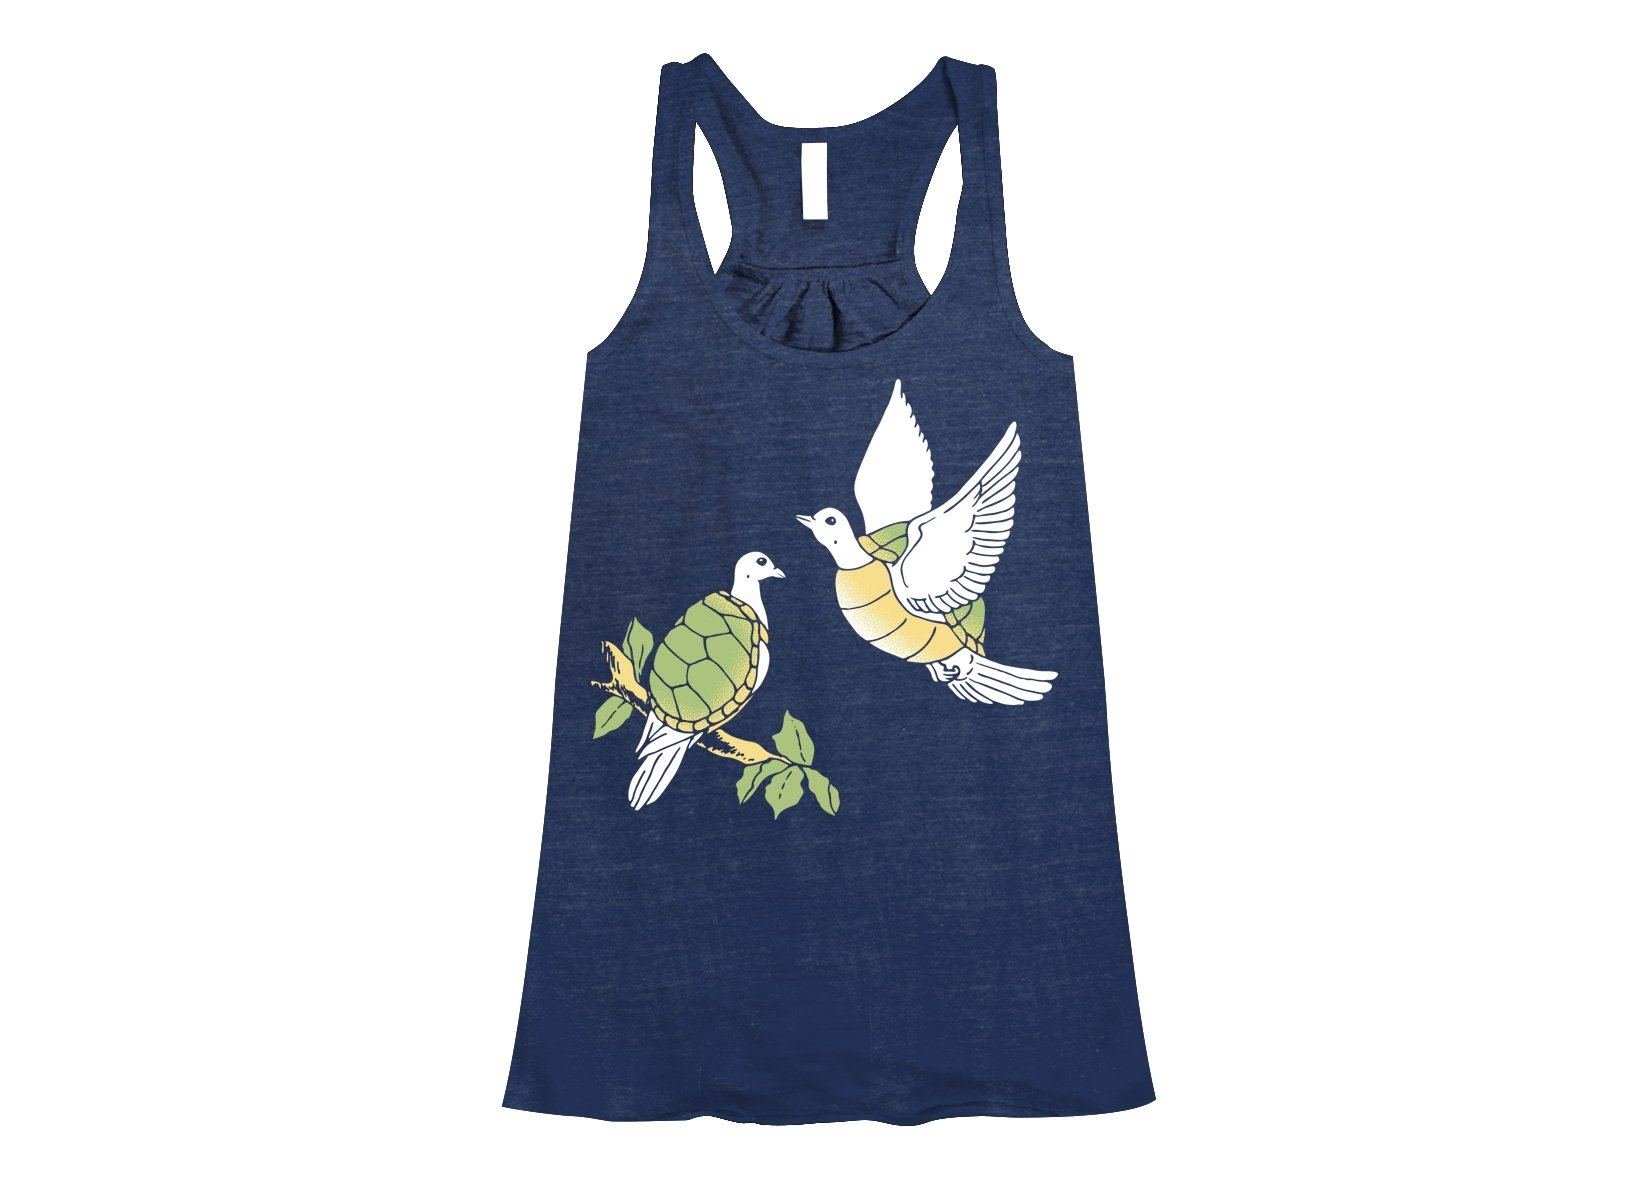 Two Turtle Doves on Womens Tanks T-Shirt